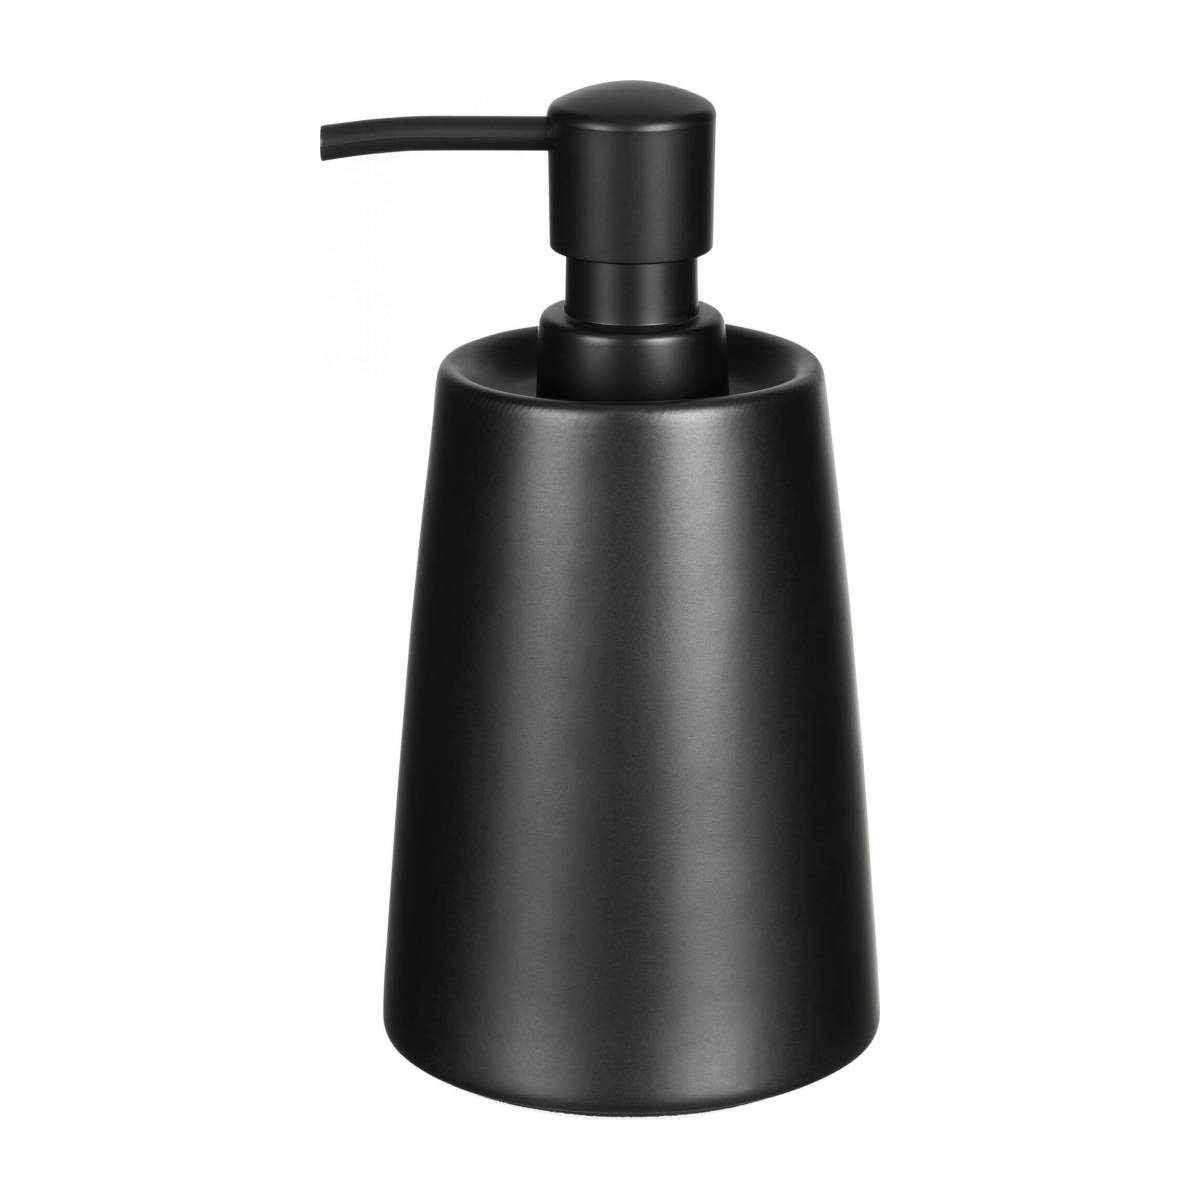 Soap Dispenser Black n°2